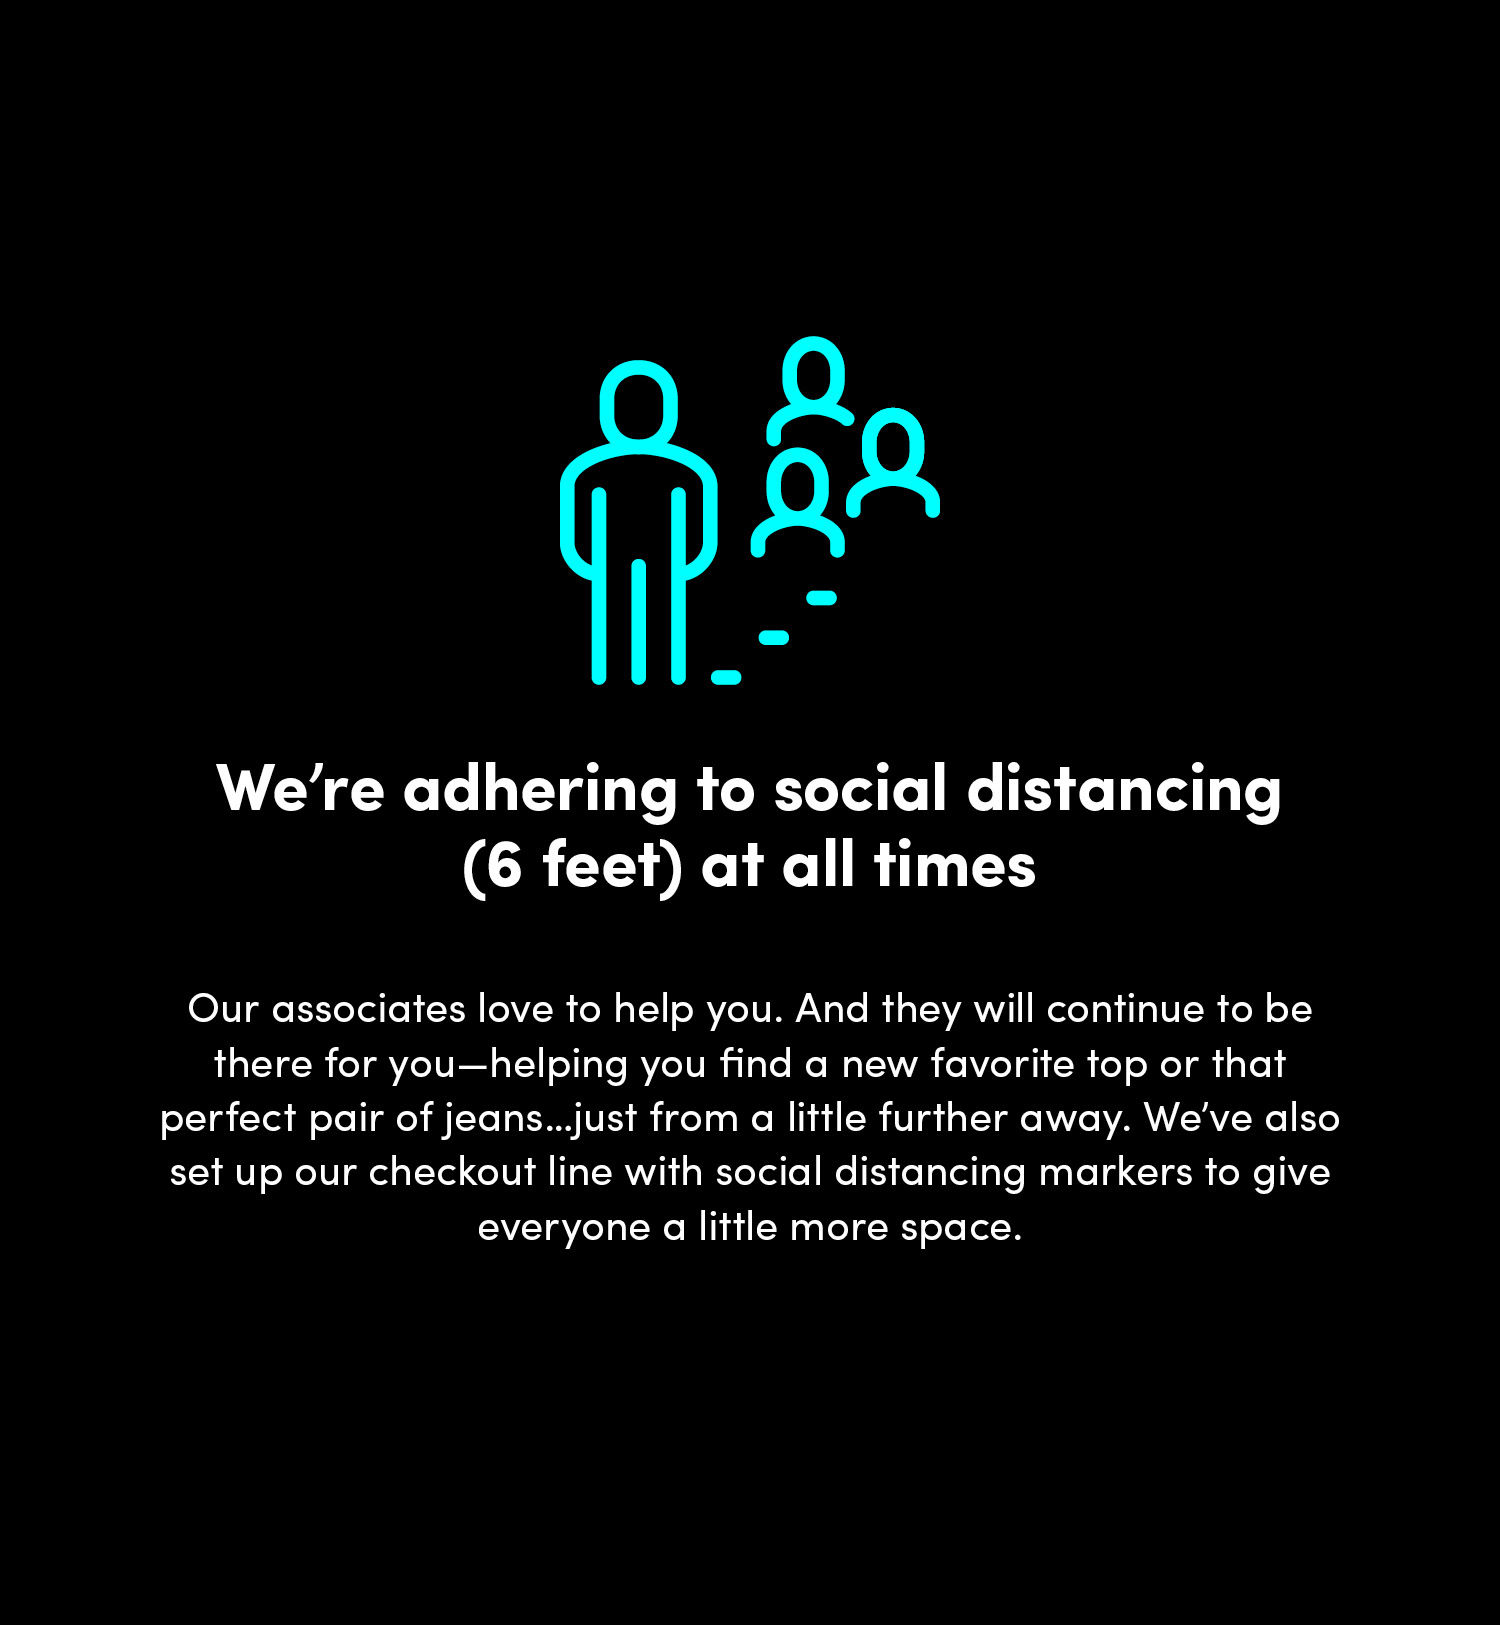 We're adhering to social distancing (6 feet) at all times. Our associates love to help you. And they will continue to be there for you-helping you find a new favorite top or that perfect pair of jeans...just from a little further away. We've also set up our checkout line with social distancing markers to give everyone a little more space.